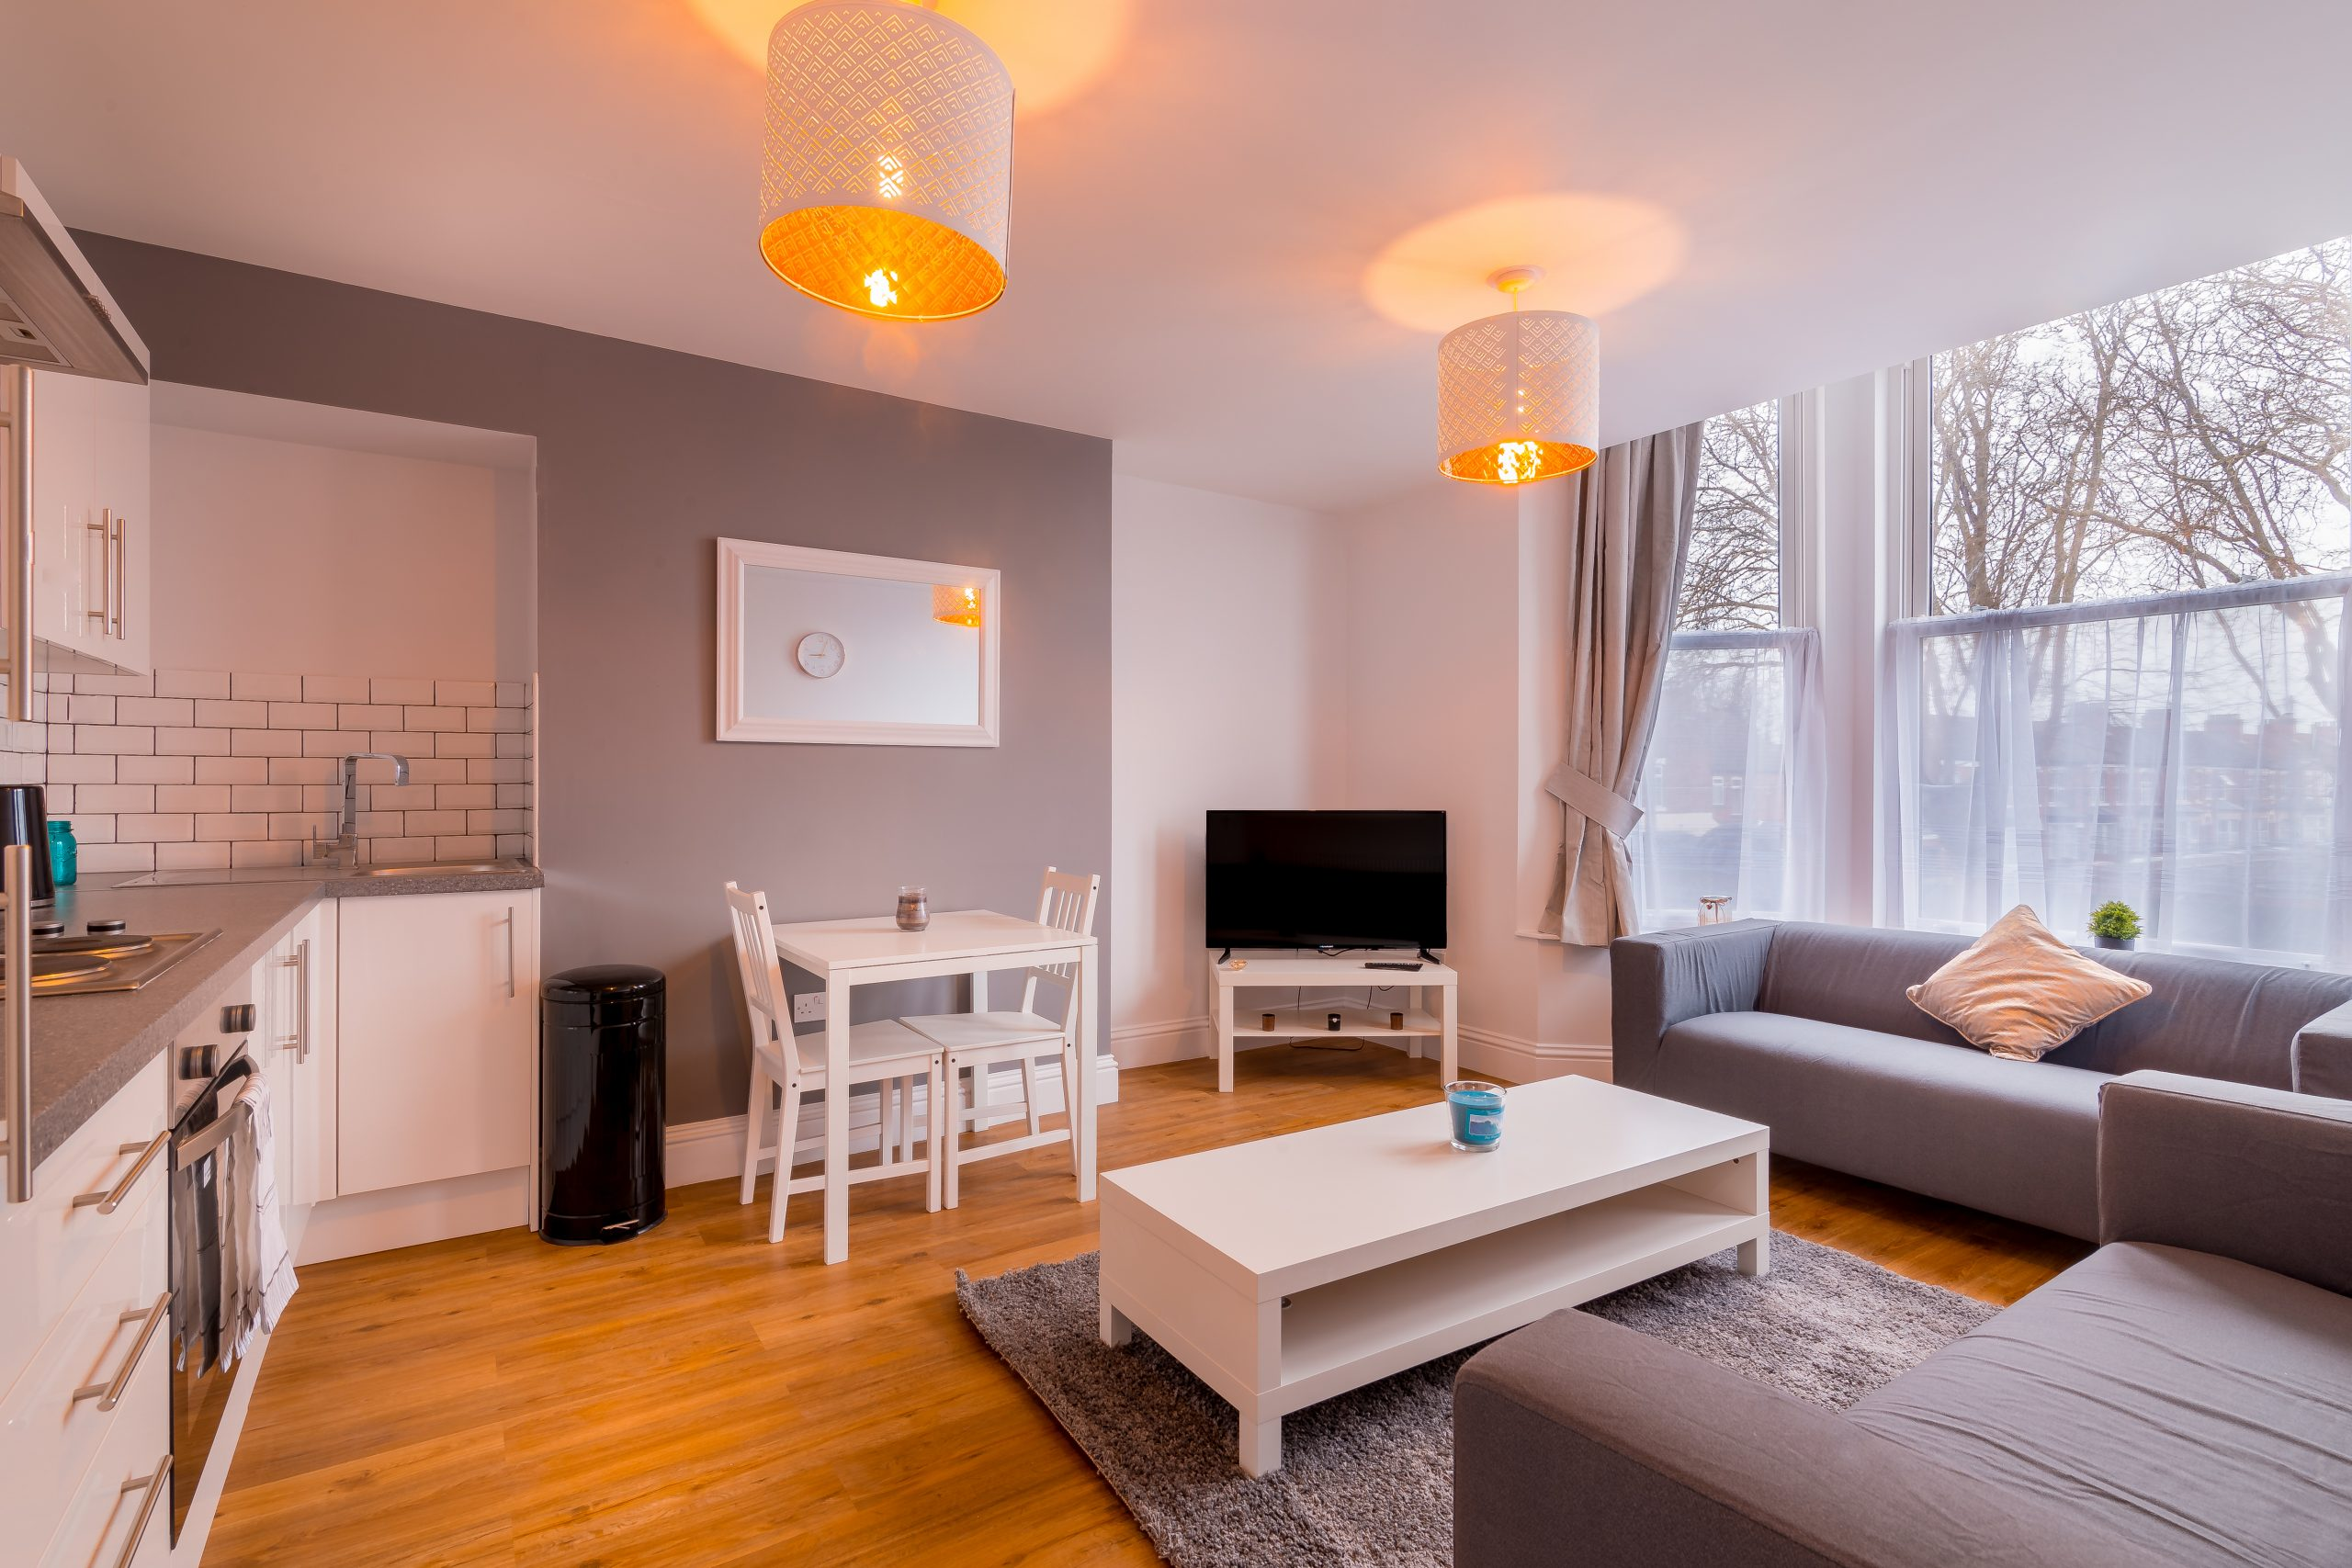 student accommodation hull, student accommodation lets hull, student properties hull